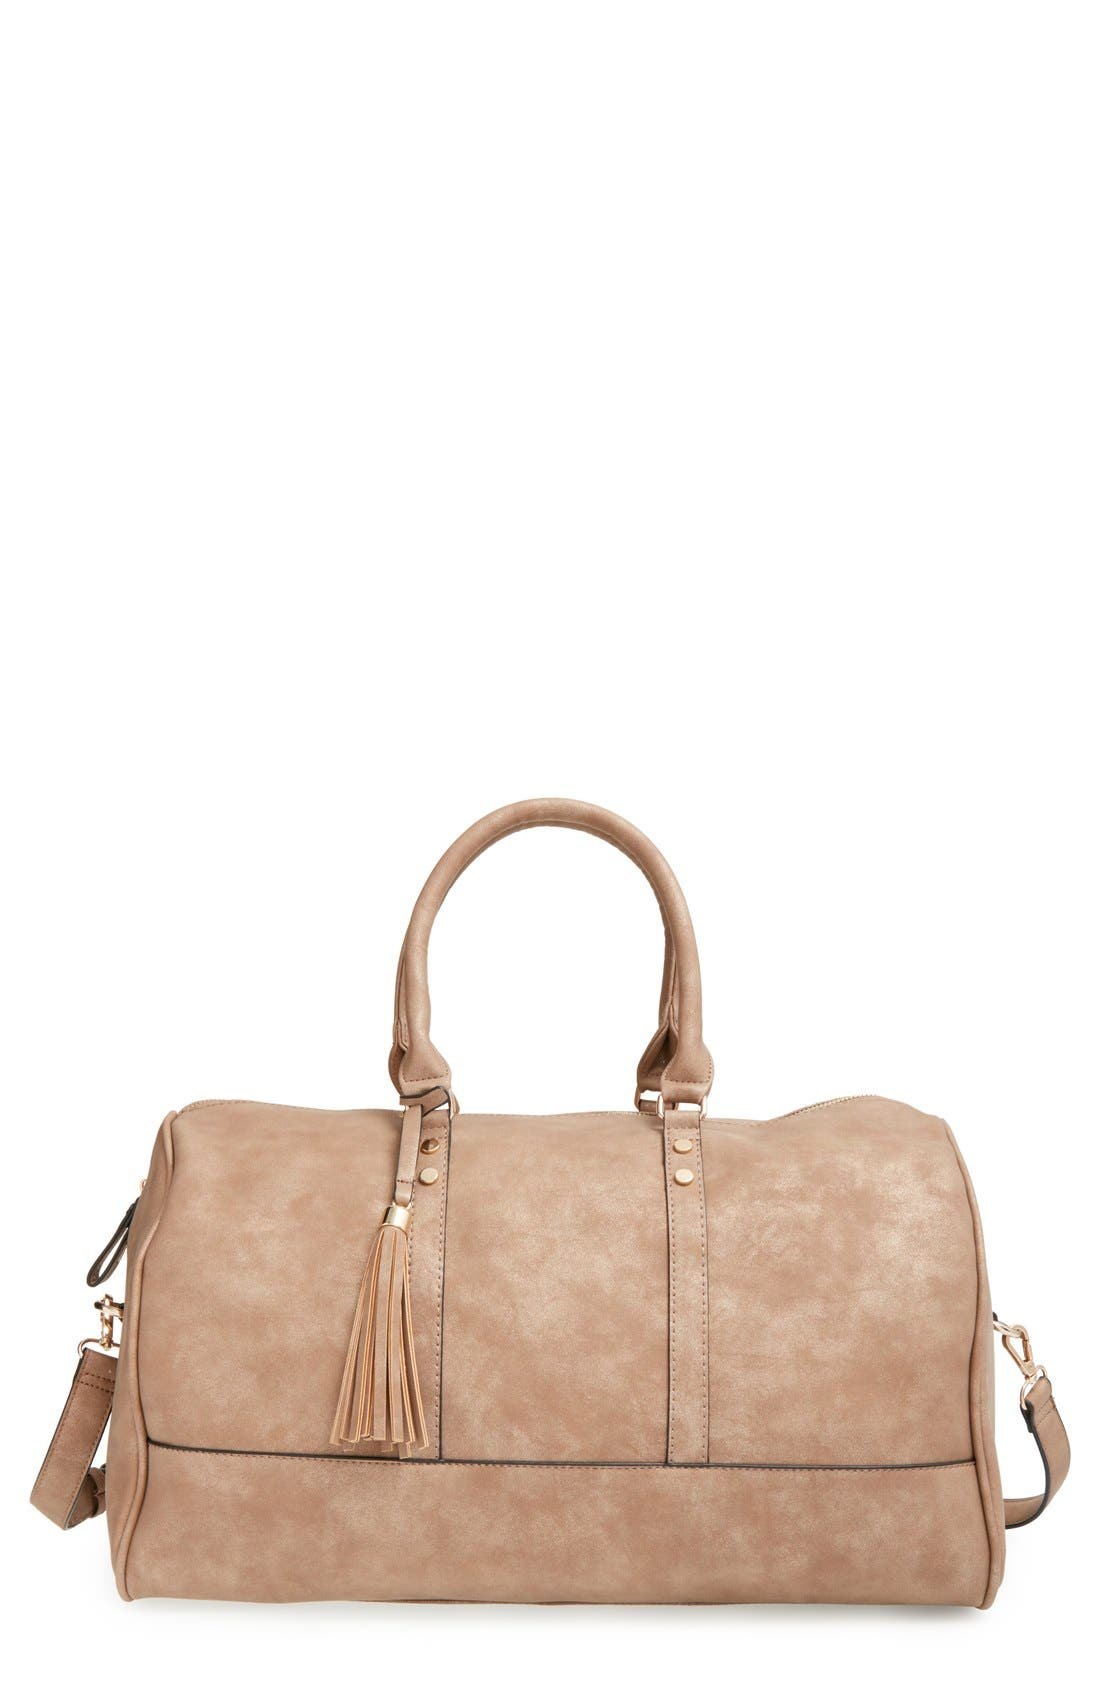 Alternate Image 1 Selected - Sole Society 'Finley' Faux Leather Weekend Duffel Bag